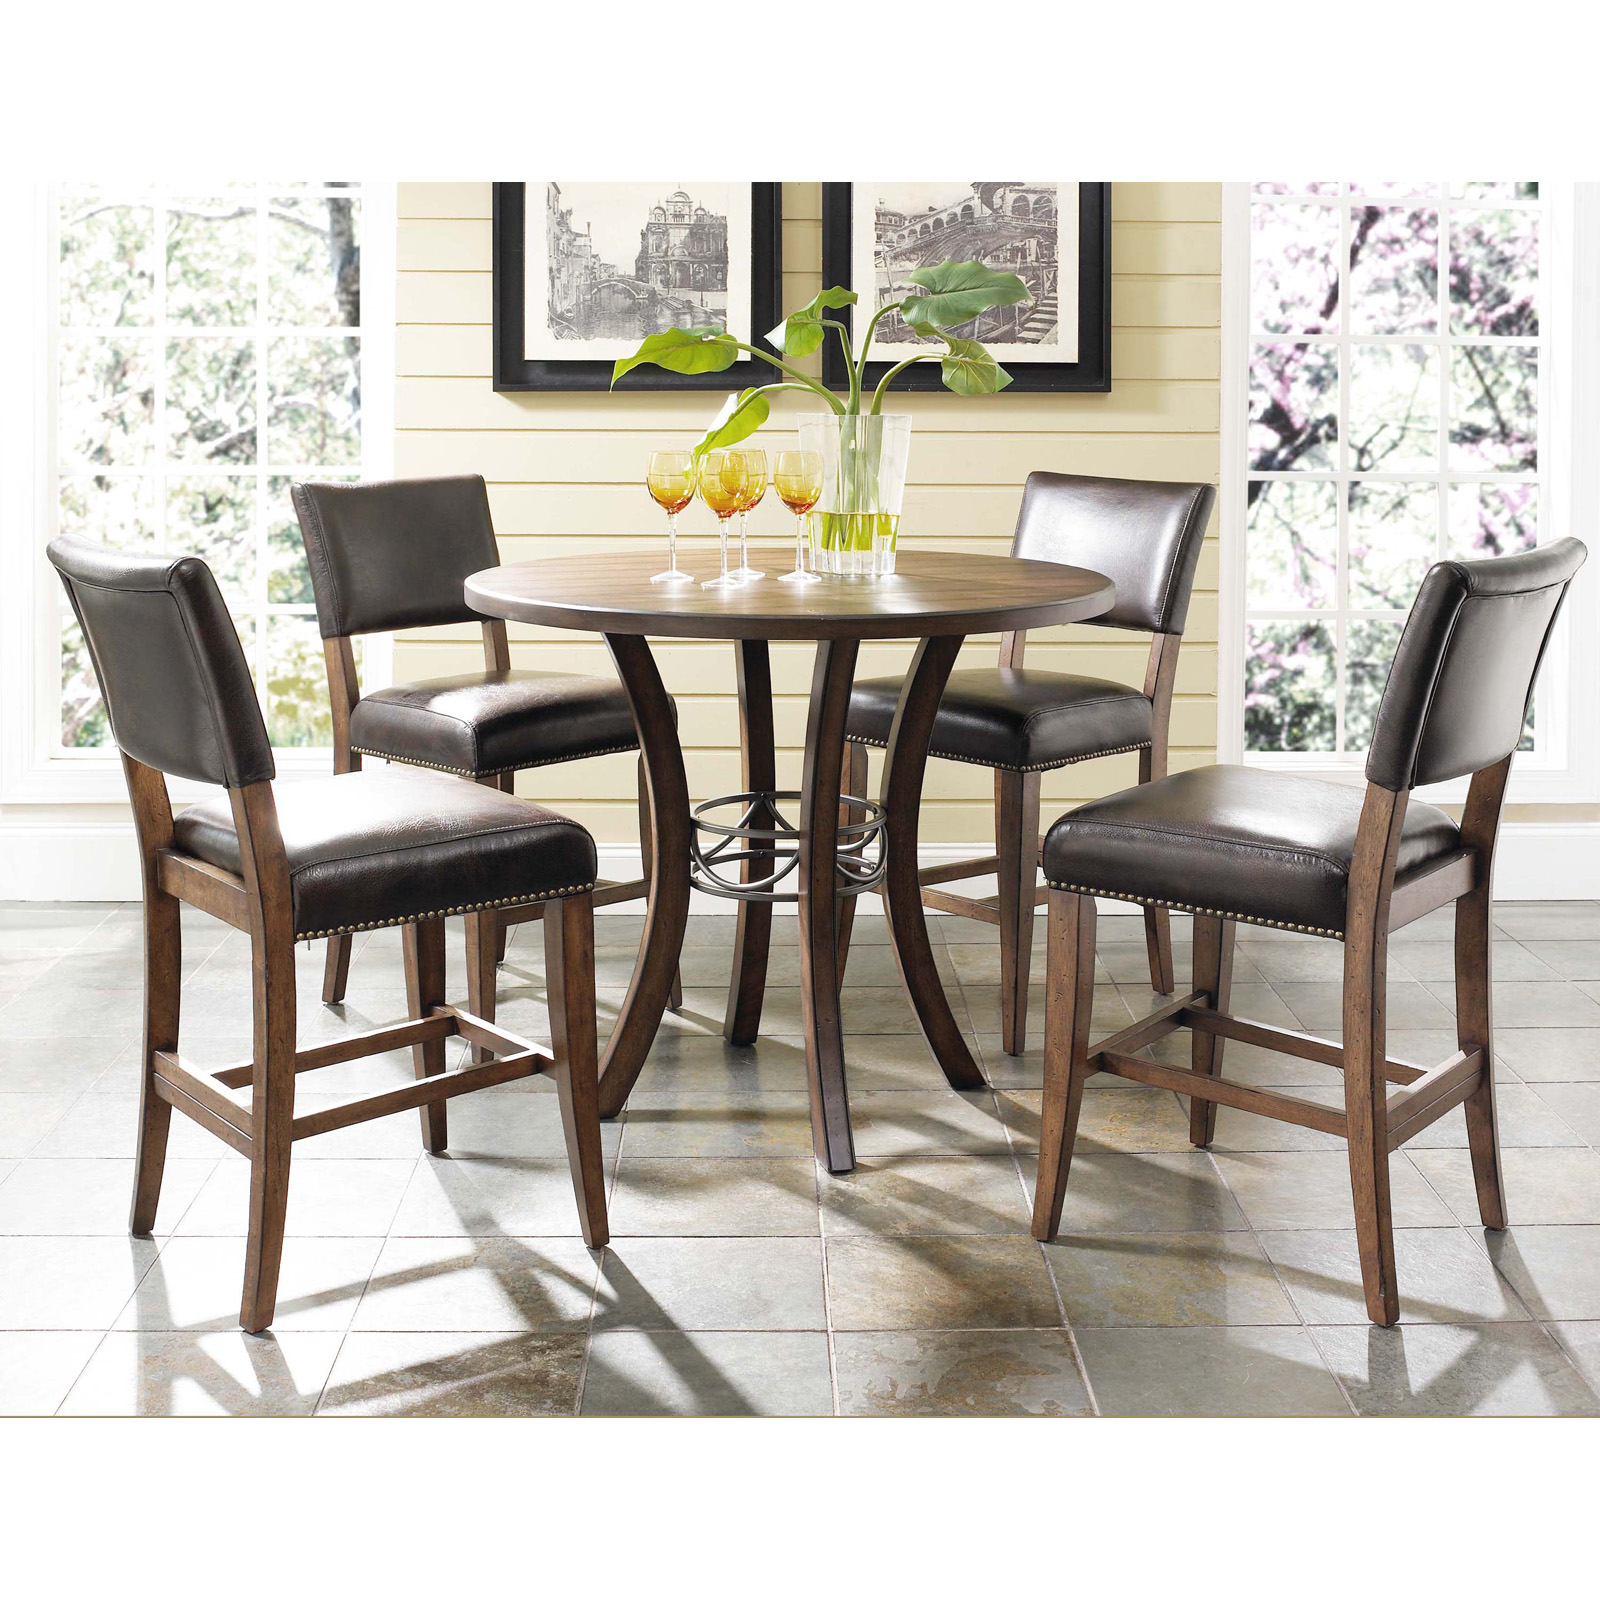 Hillsdale cameron 5 piece counter height round wood dining table set with parson chairs hayneedle